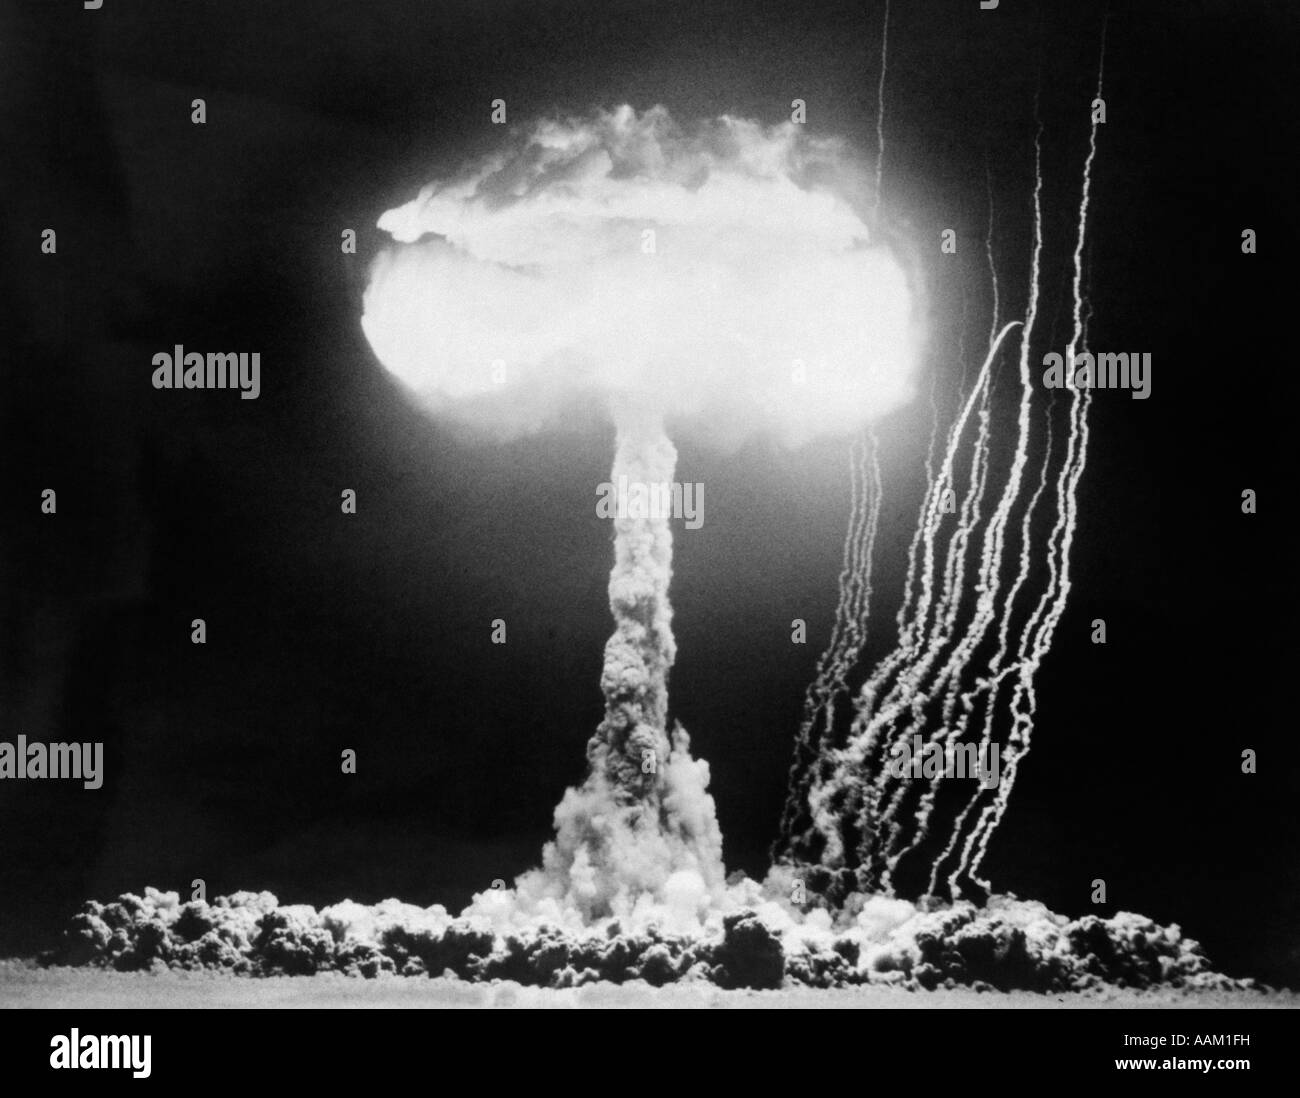 1950s ATOMIC TEST SHOWING THE BLAST AND MUSHROOM CLOUD AT THE NEVADA PROVING GROUNDS Stock Photo